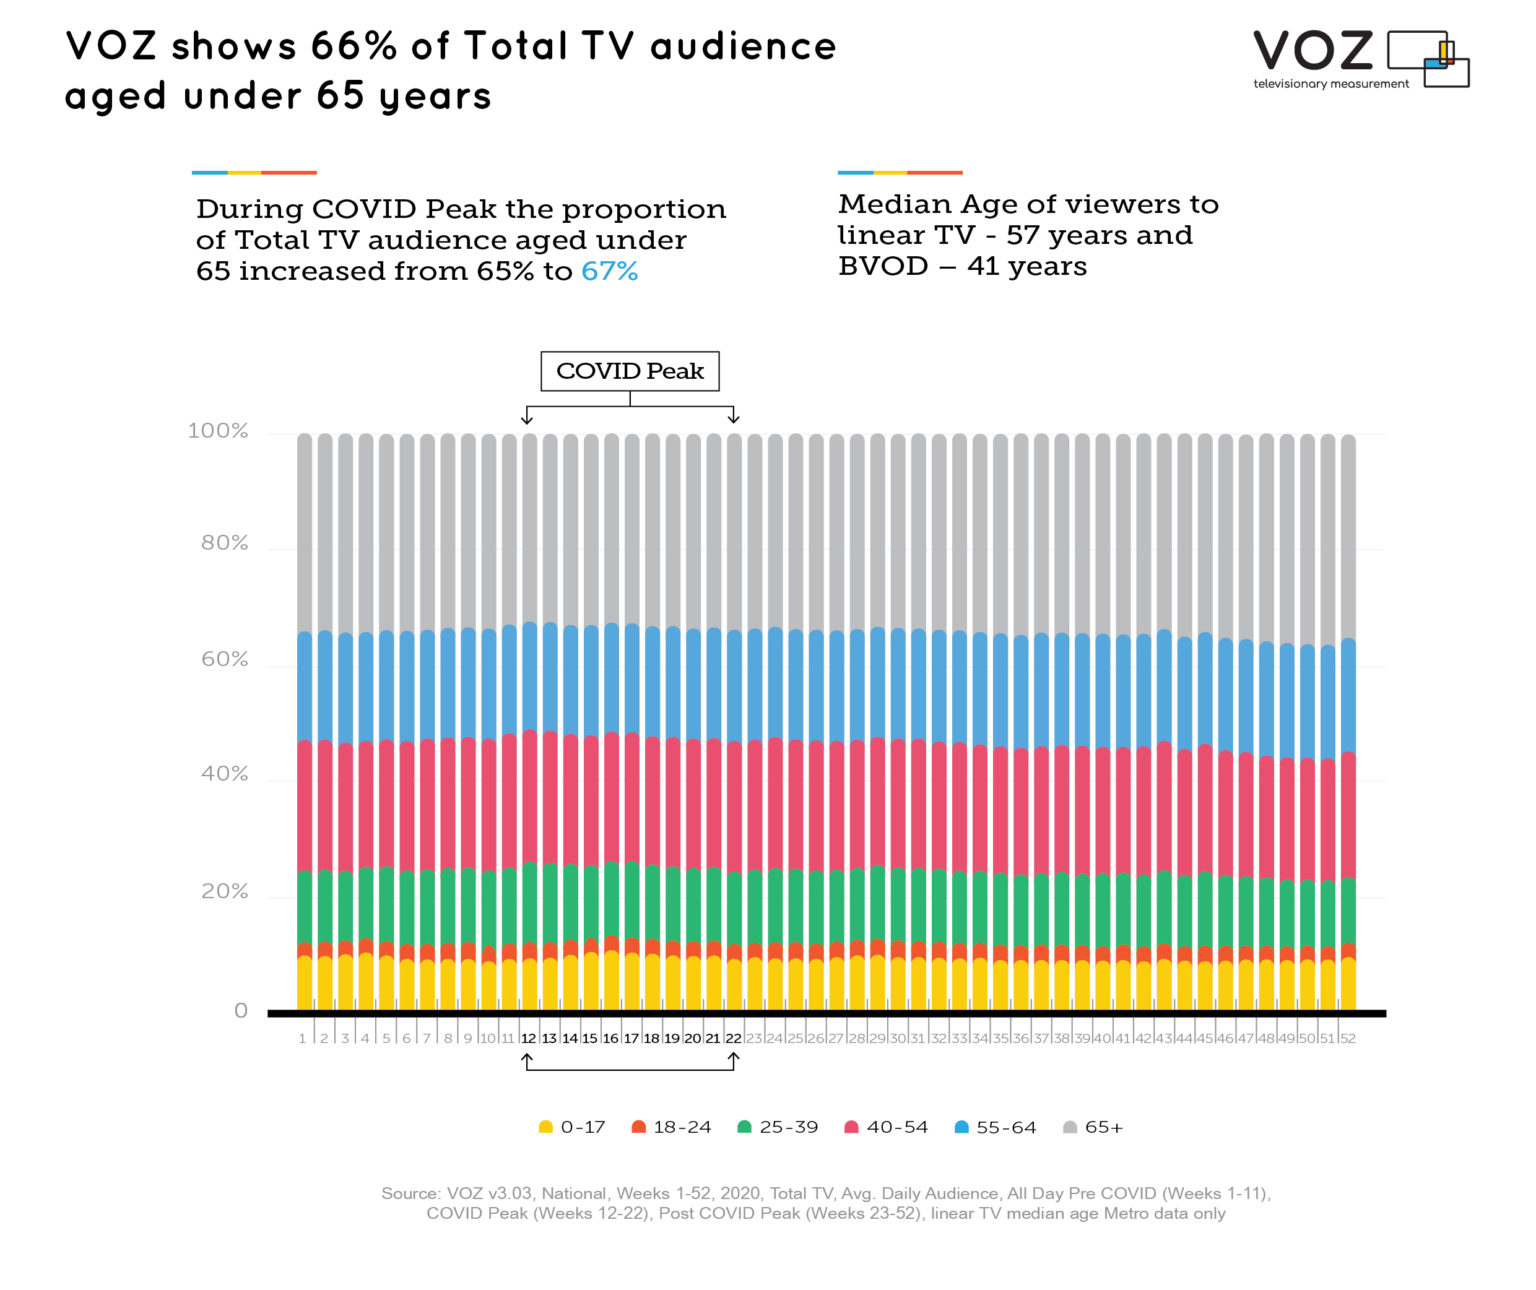 Australia - VOZ shows 66% of Total TV audience aged under 65 years - 2020